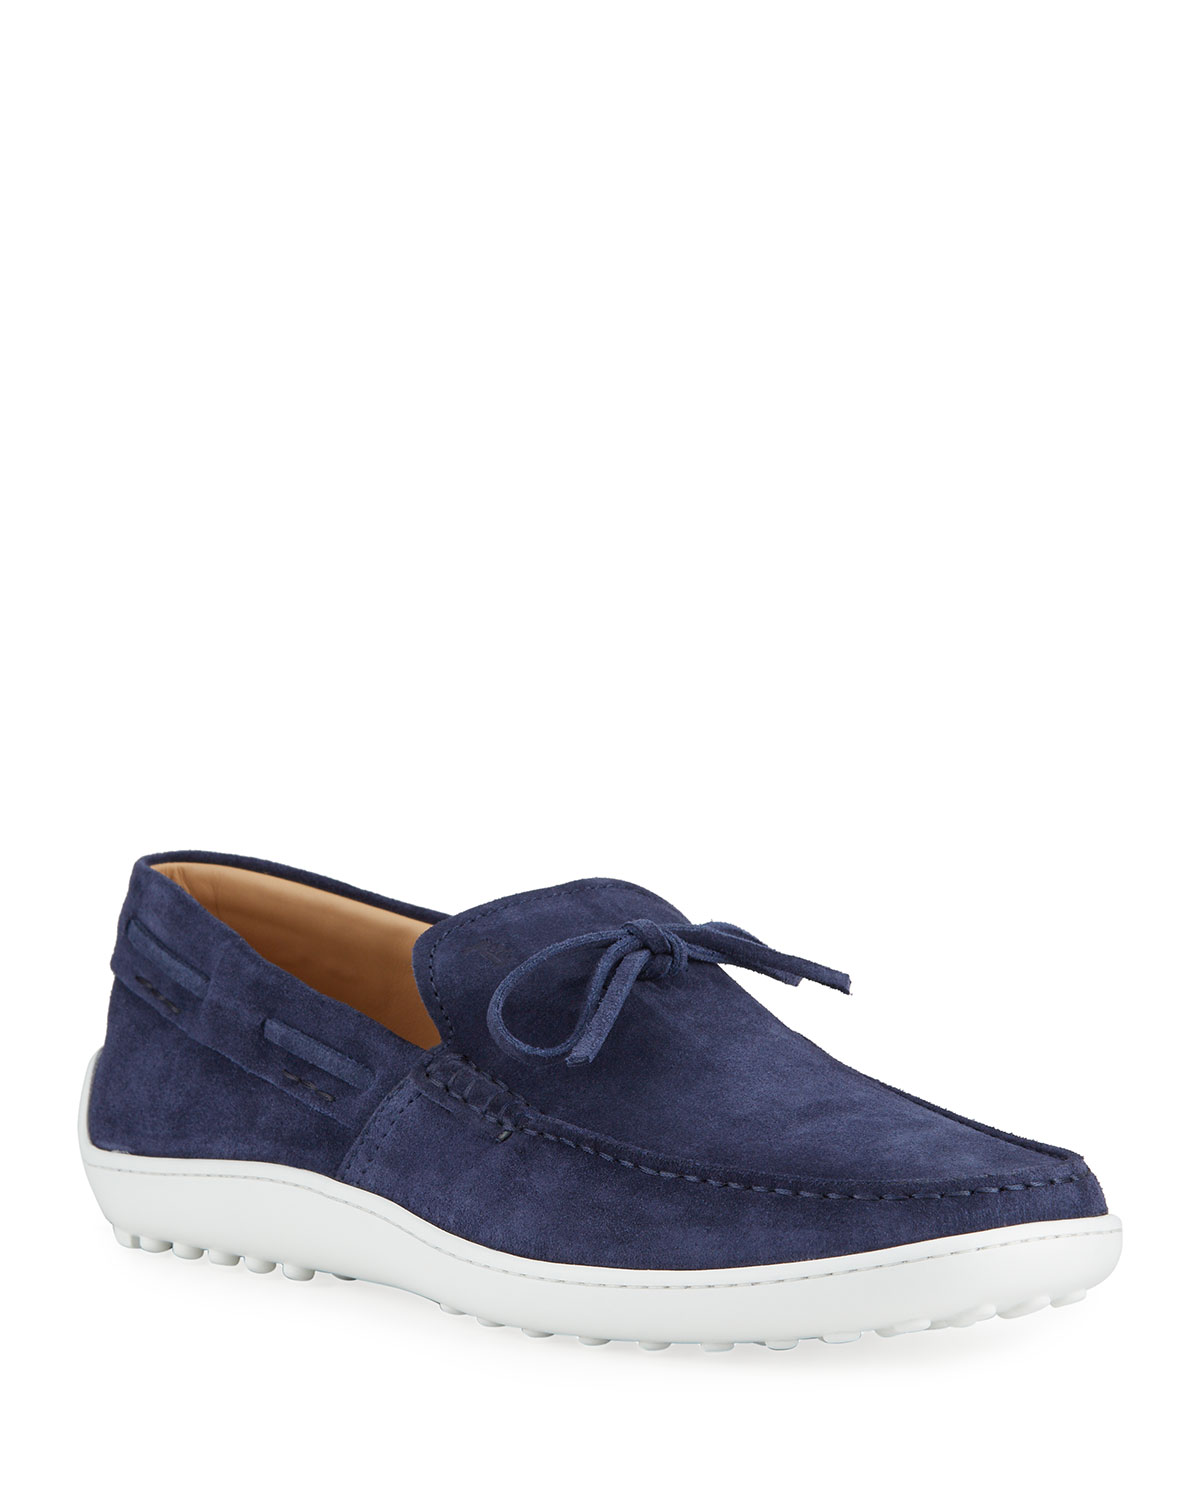 Tod's MEN'S LACCETTO SUEDE BOAT SHOES, NAVY